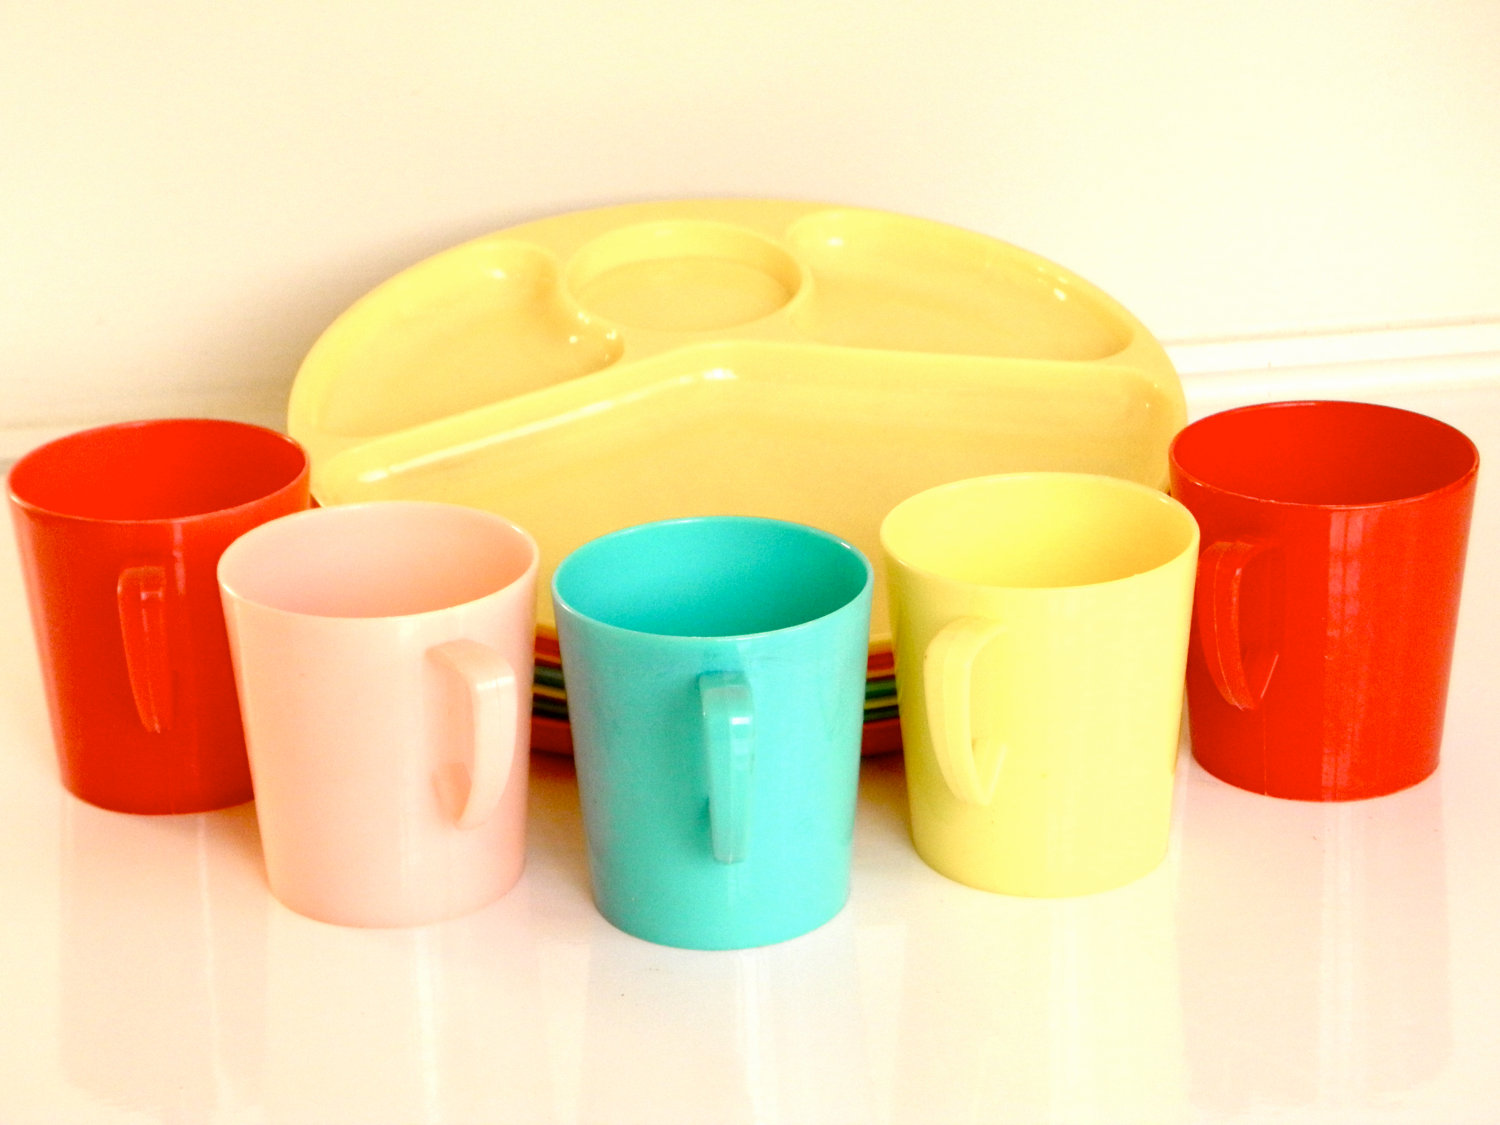 Vintage Gothamware Picnic Set Of Colorful Plastic Melamine Plates And Cups